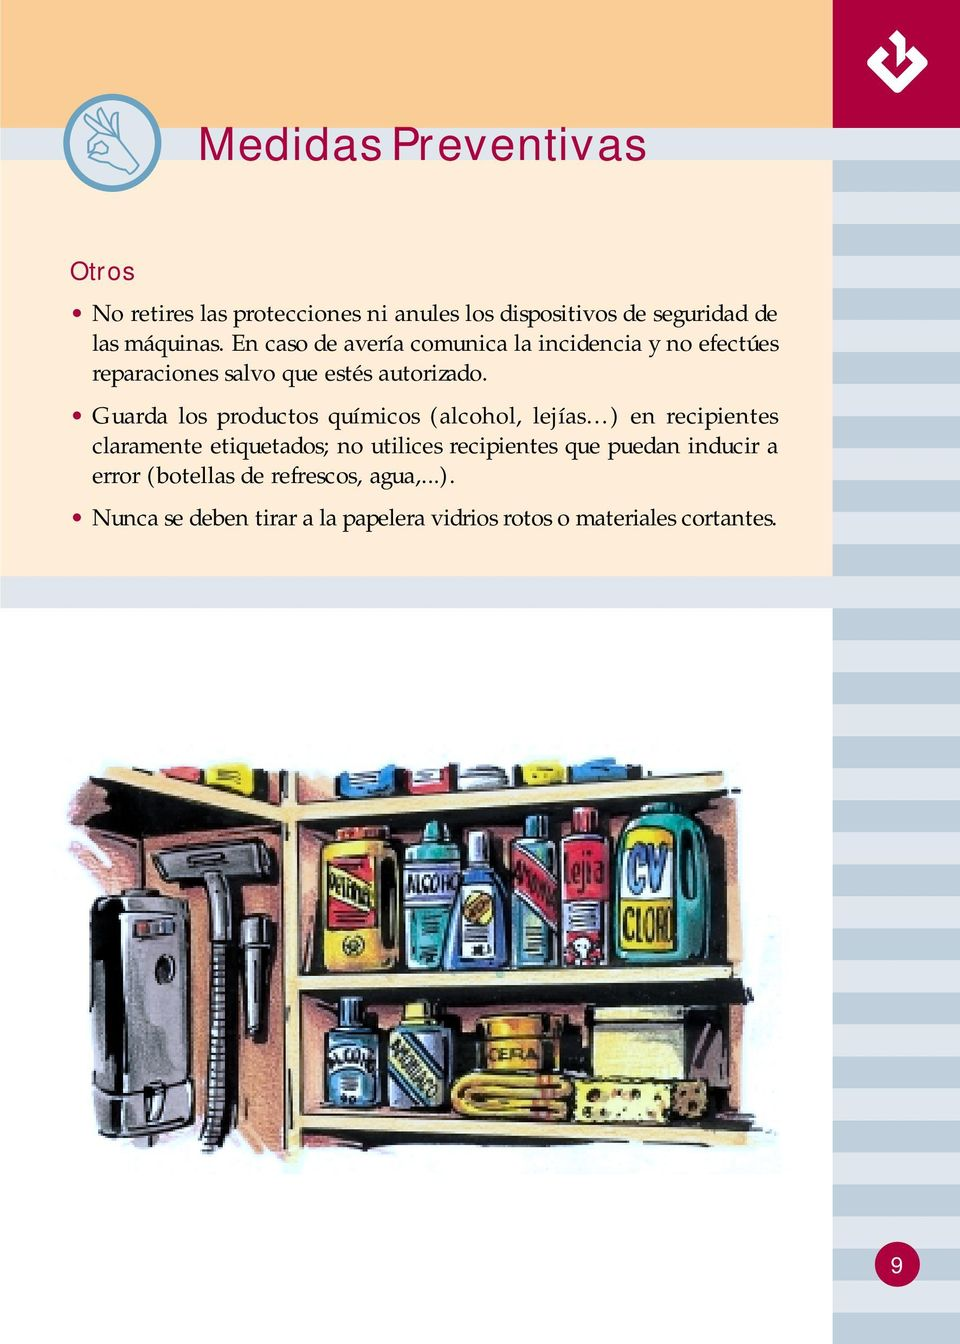 Guarda los productos químicos (alcohol, lejías ) en recipientes claramente etiquetados; no utilices recipientes